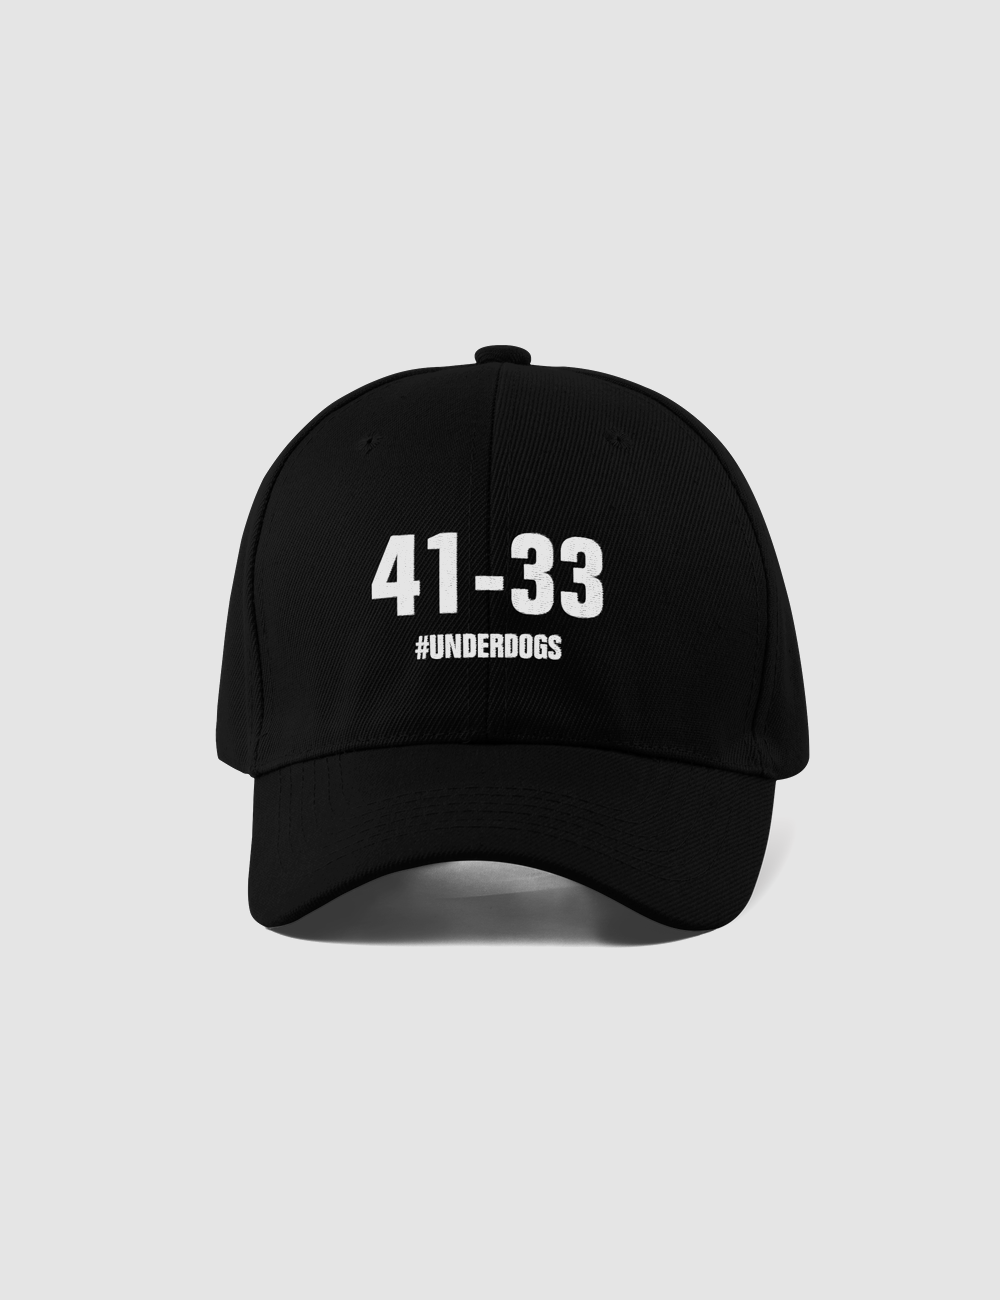 41 To 33 Underdogs | Closed Back Flexfit Hat